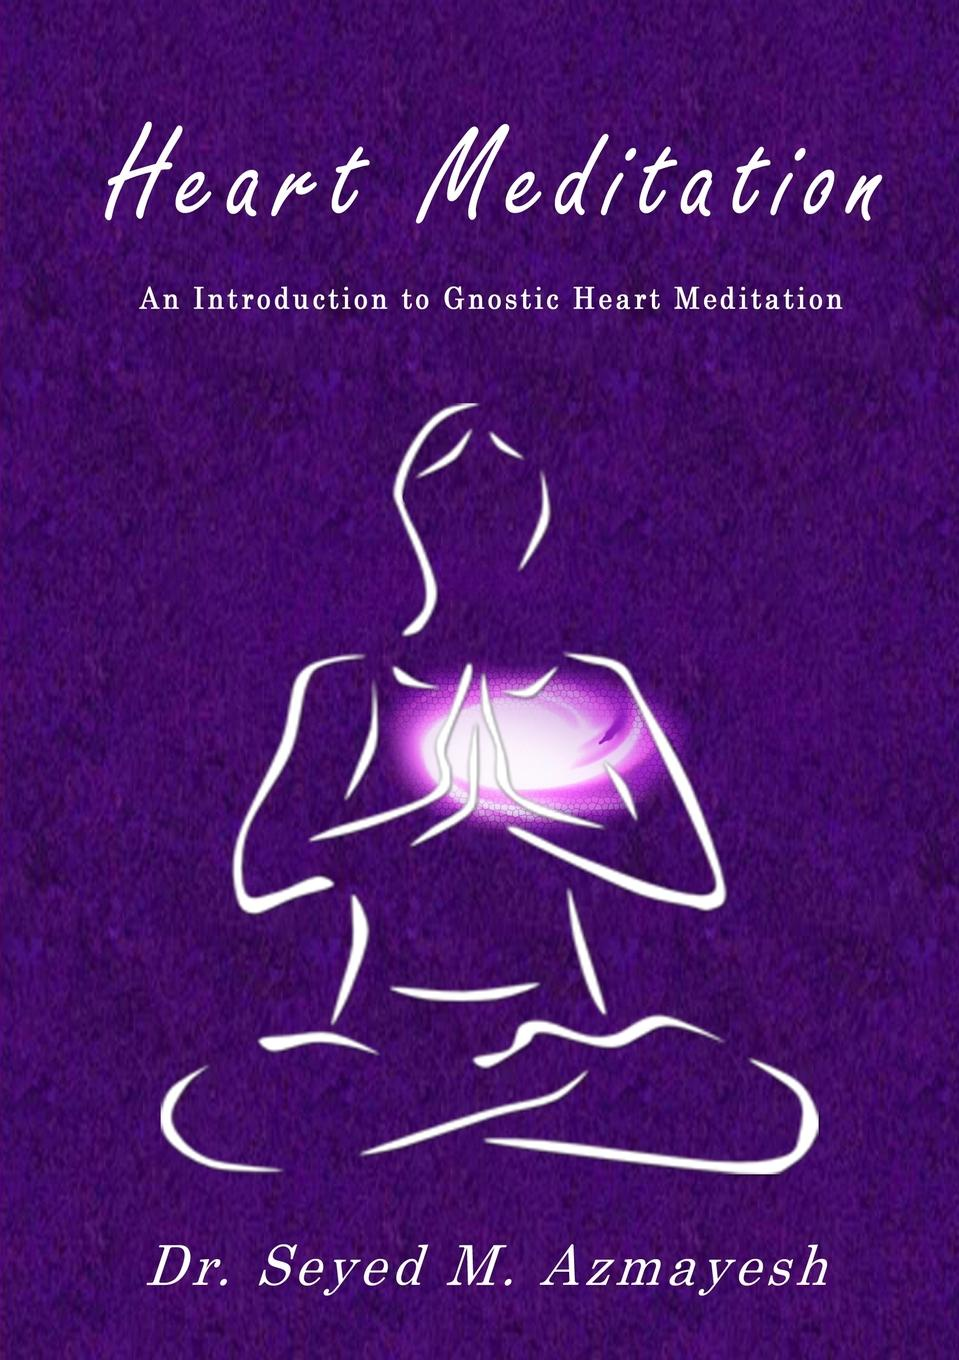 Dr Seyed M. Azmayesh Heart Meditation. An Introduction to Gnostic Heart Meditation pete mandik this is philosophy of mind an introduction isbn 9781118607480